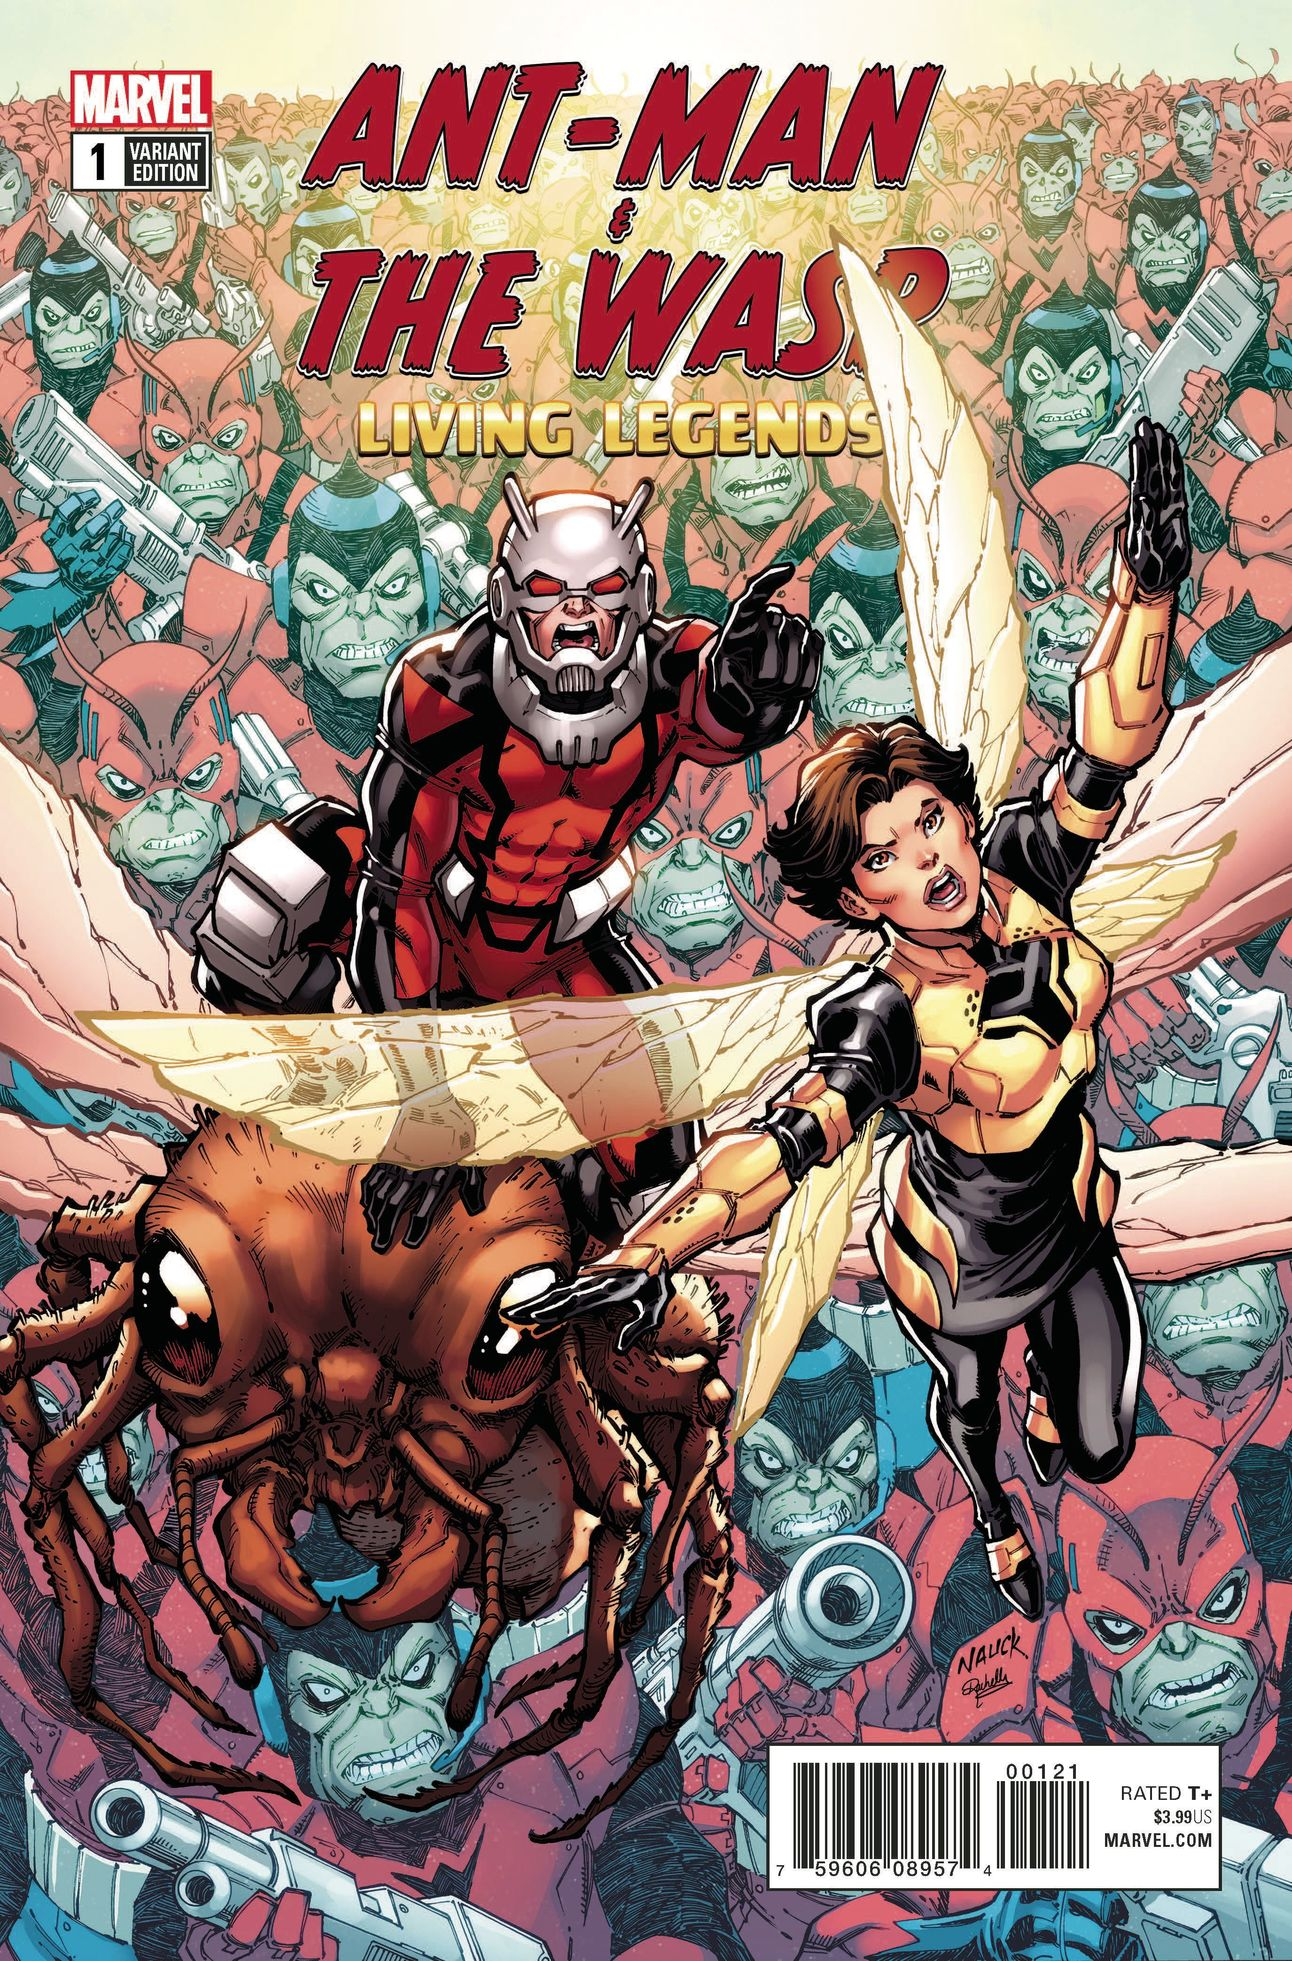 Ant-Man and the Wasp Living Legends 1 cover by Todd Nauck